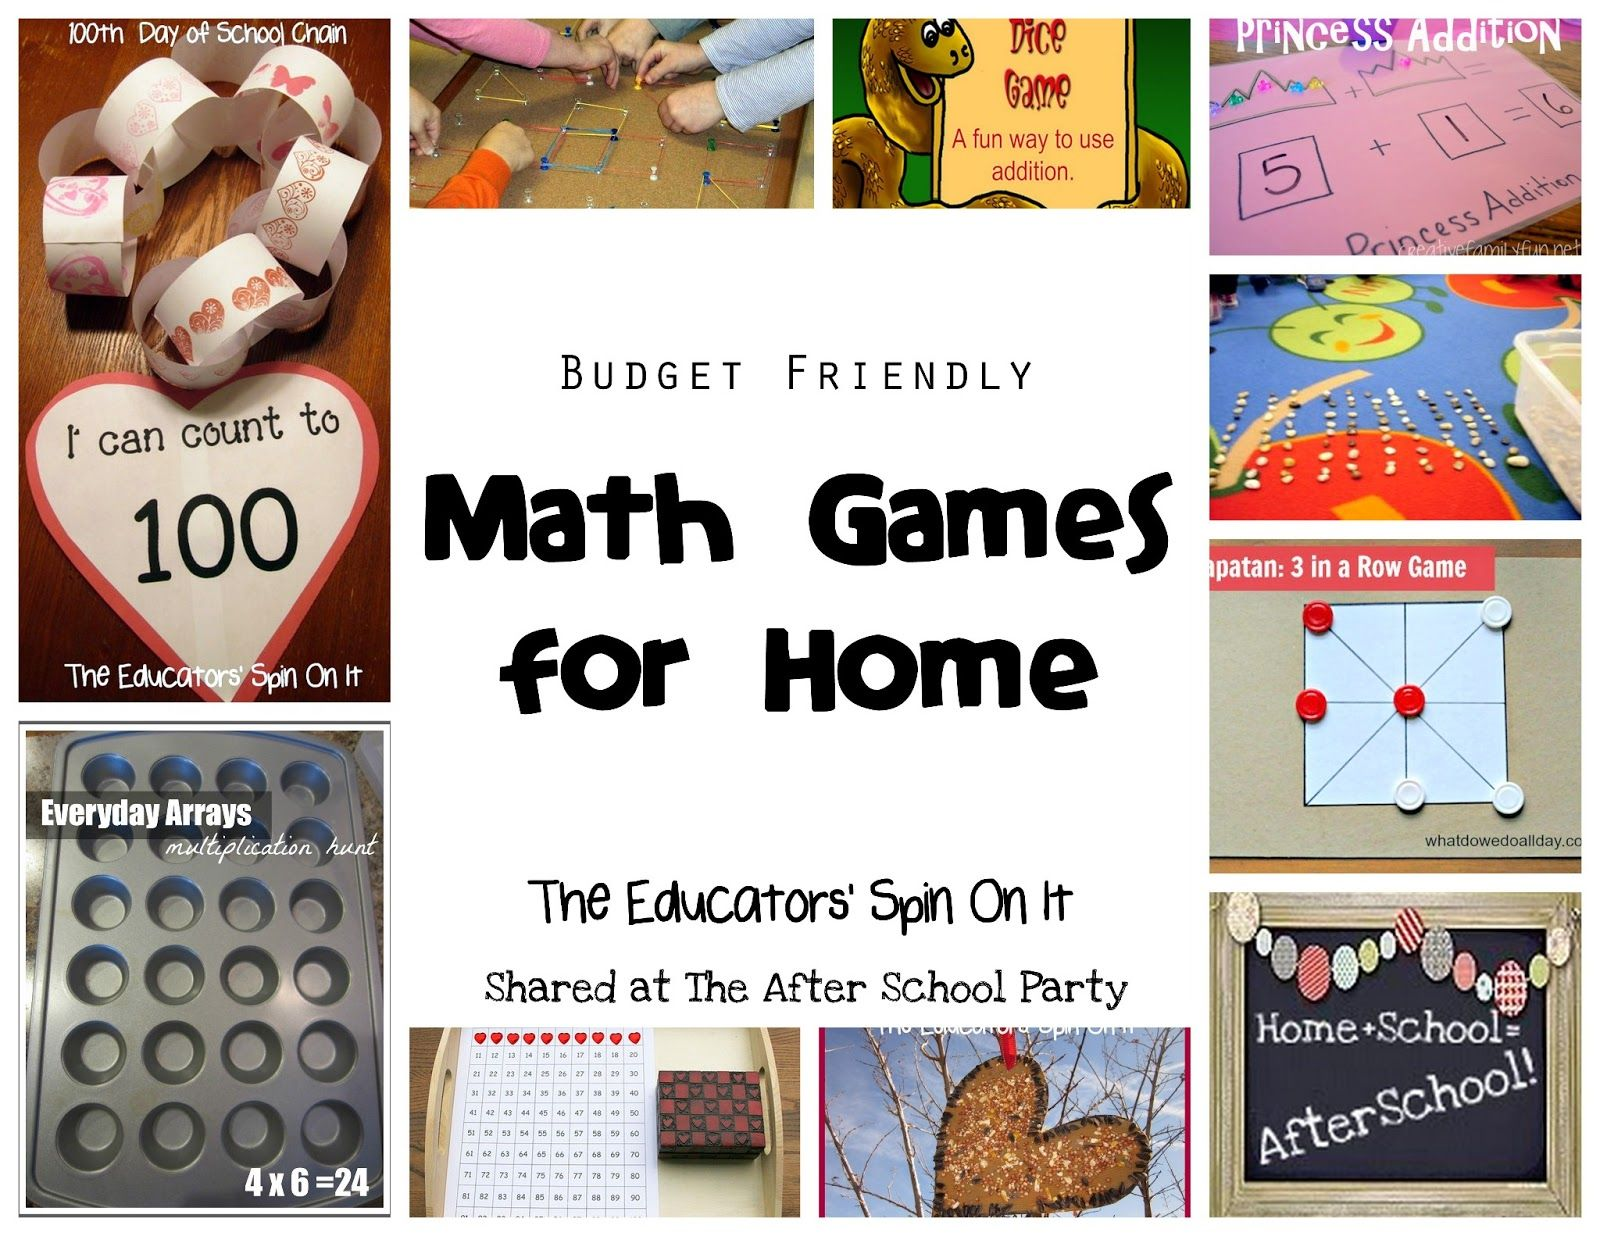 Budget Friendly Math Games for Home from The Educators\' Spin On It ...